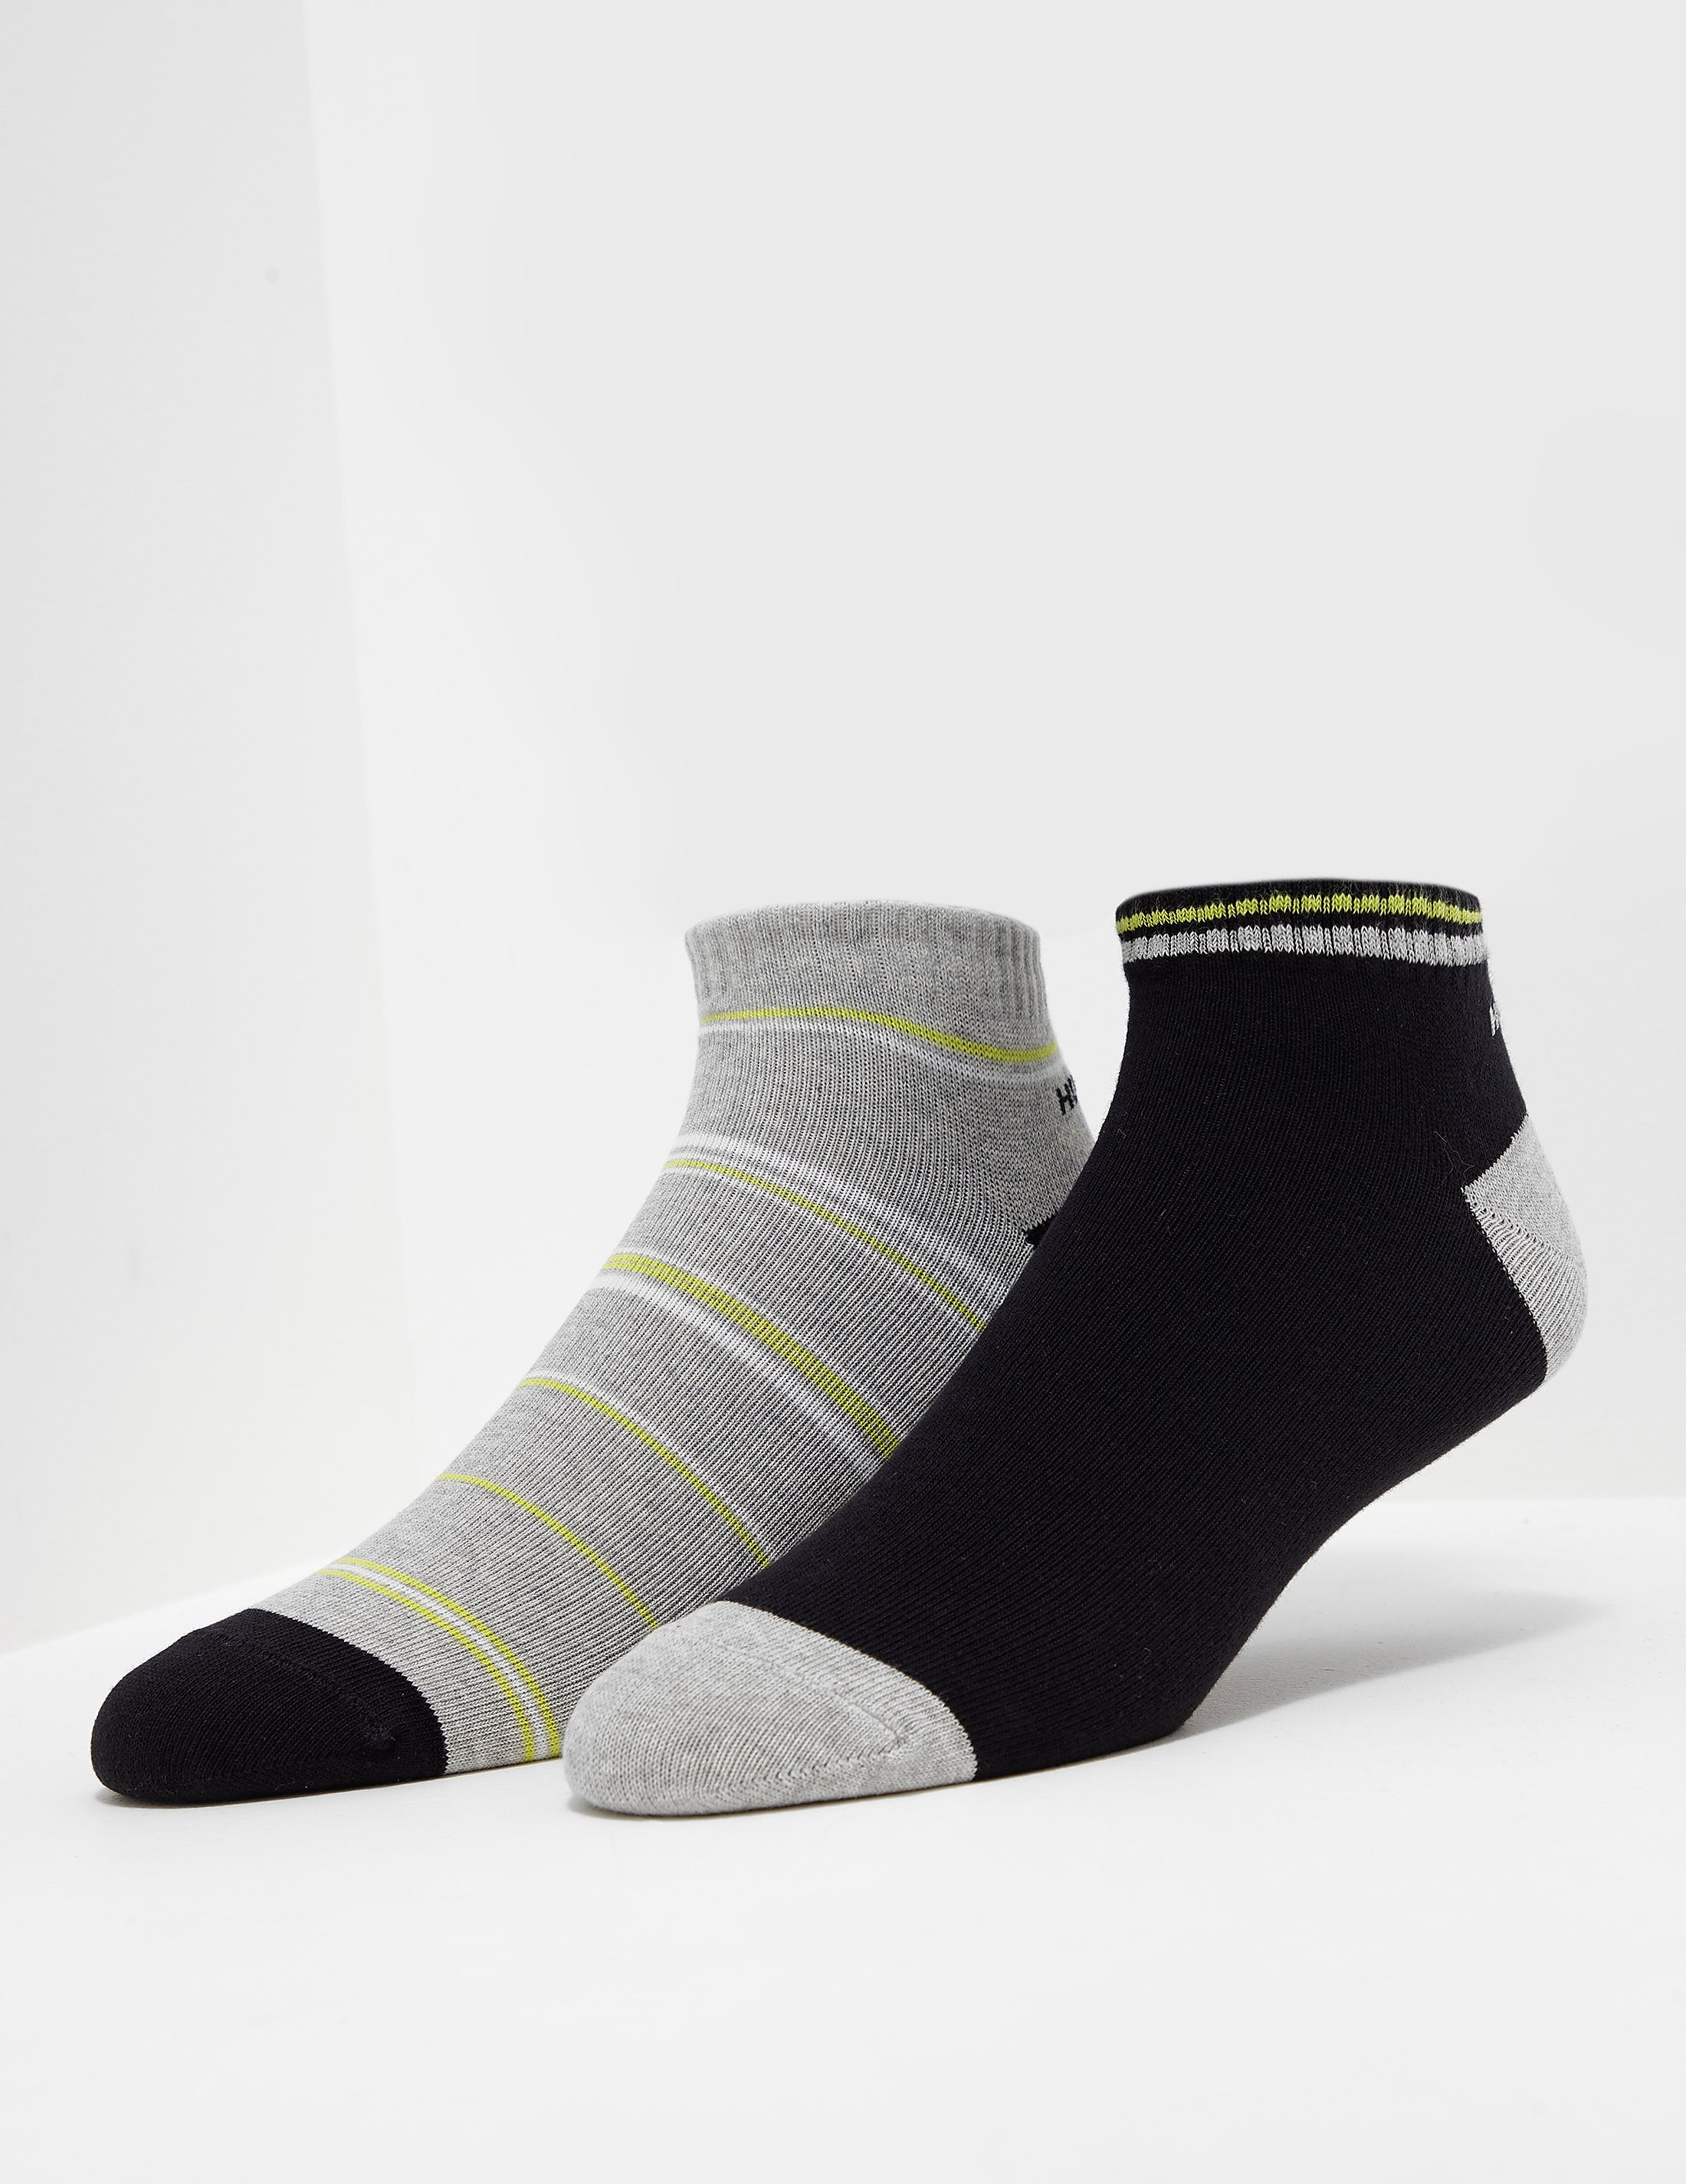 BOSS Kids' 2 Pack Socks